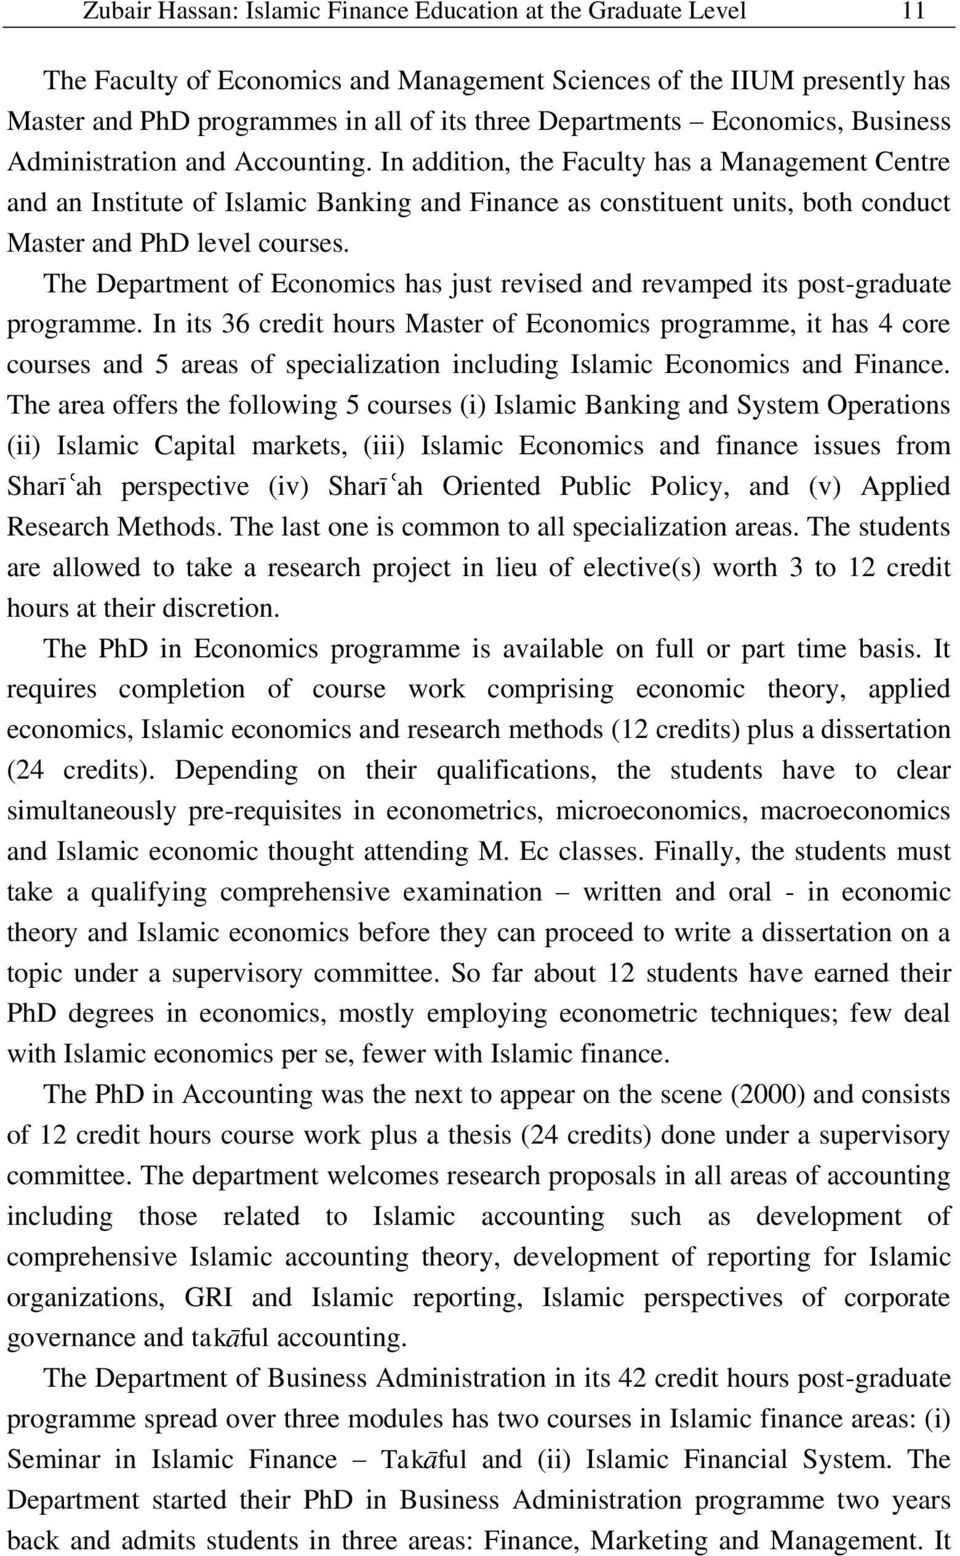 In addition, the Faculty has a Management Centre and an Institute of Islamic Banking and Finance as constituent units, both conduct Master and PhD level courses.